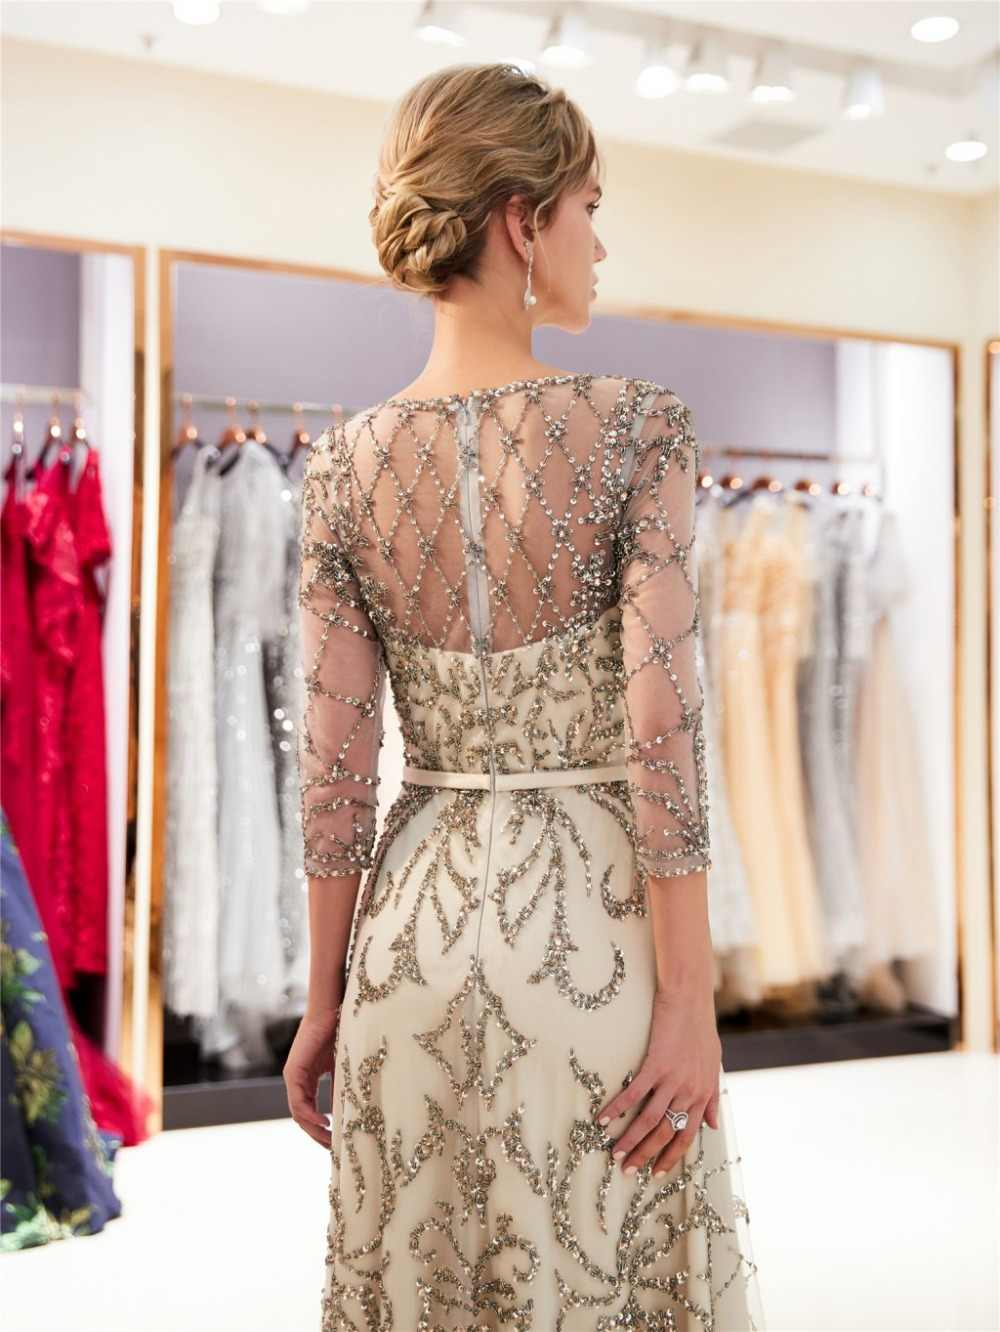 c1d5d01271 ... 2019 Hot Champagne A-line Long Prom Dress With 3 4 Sleeves Lucury  Beading